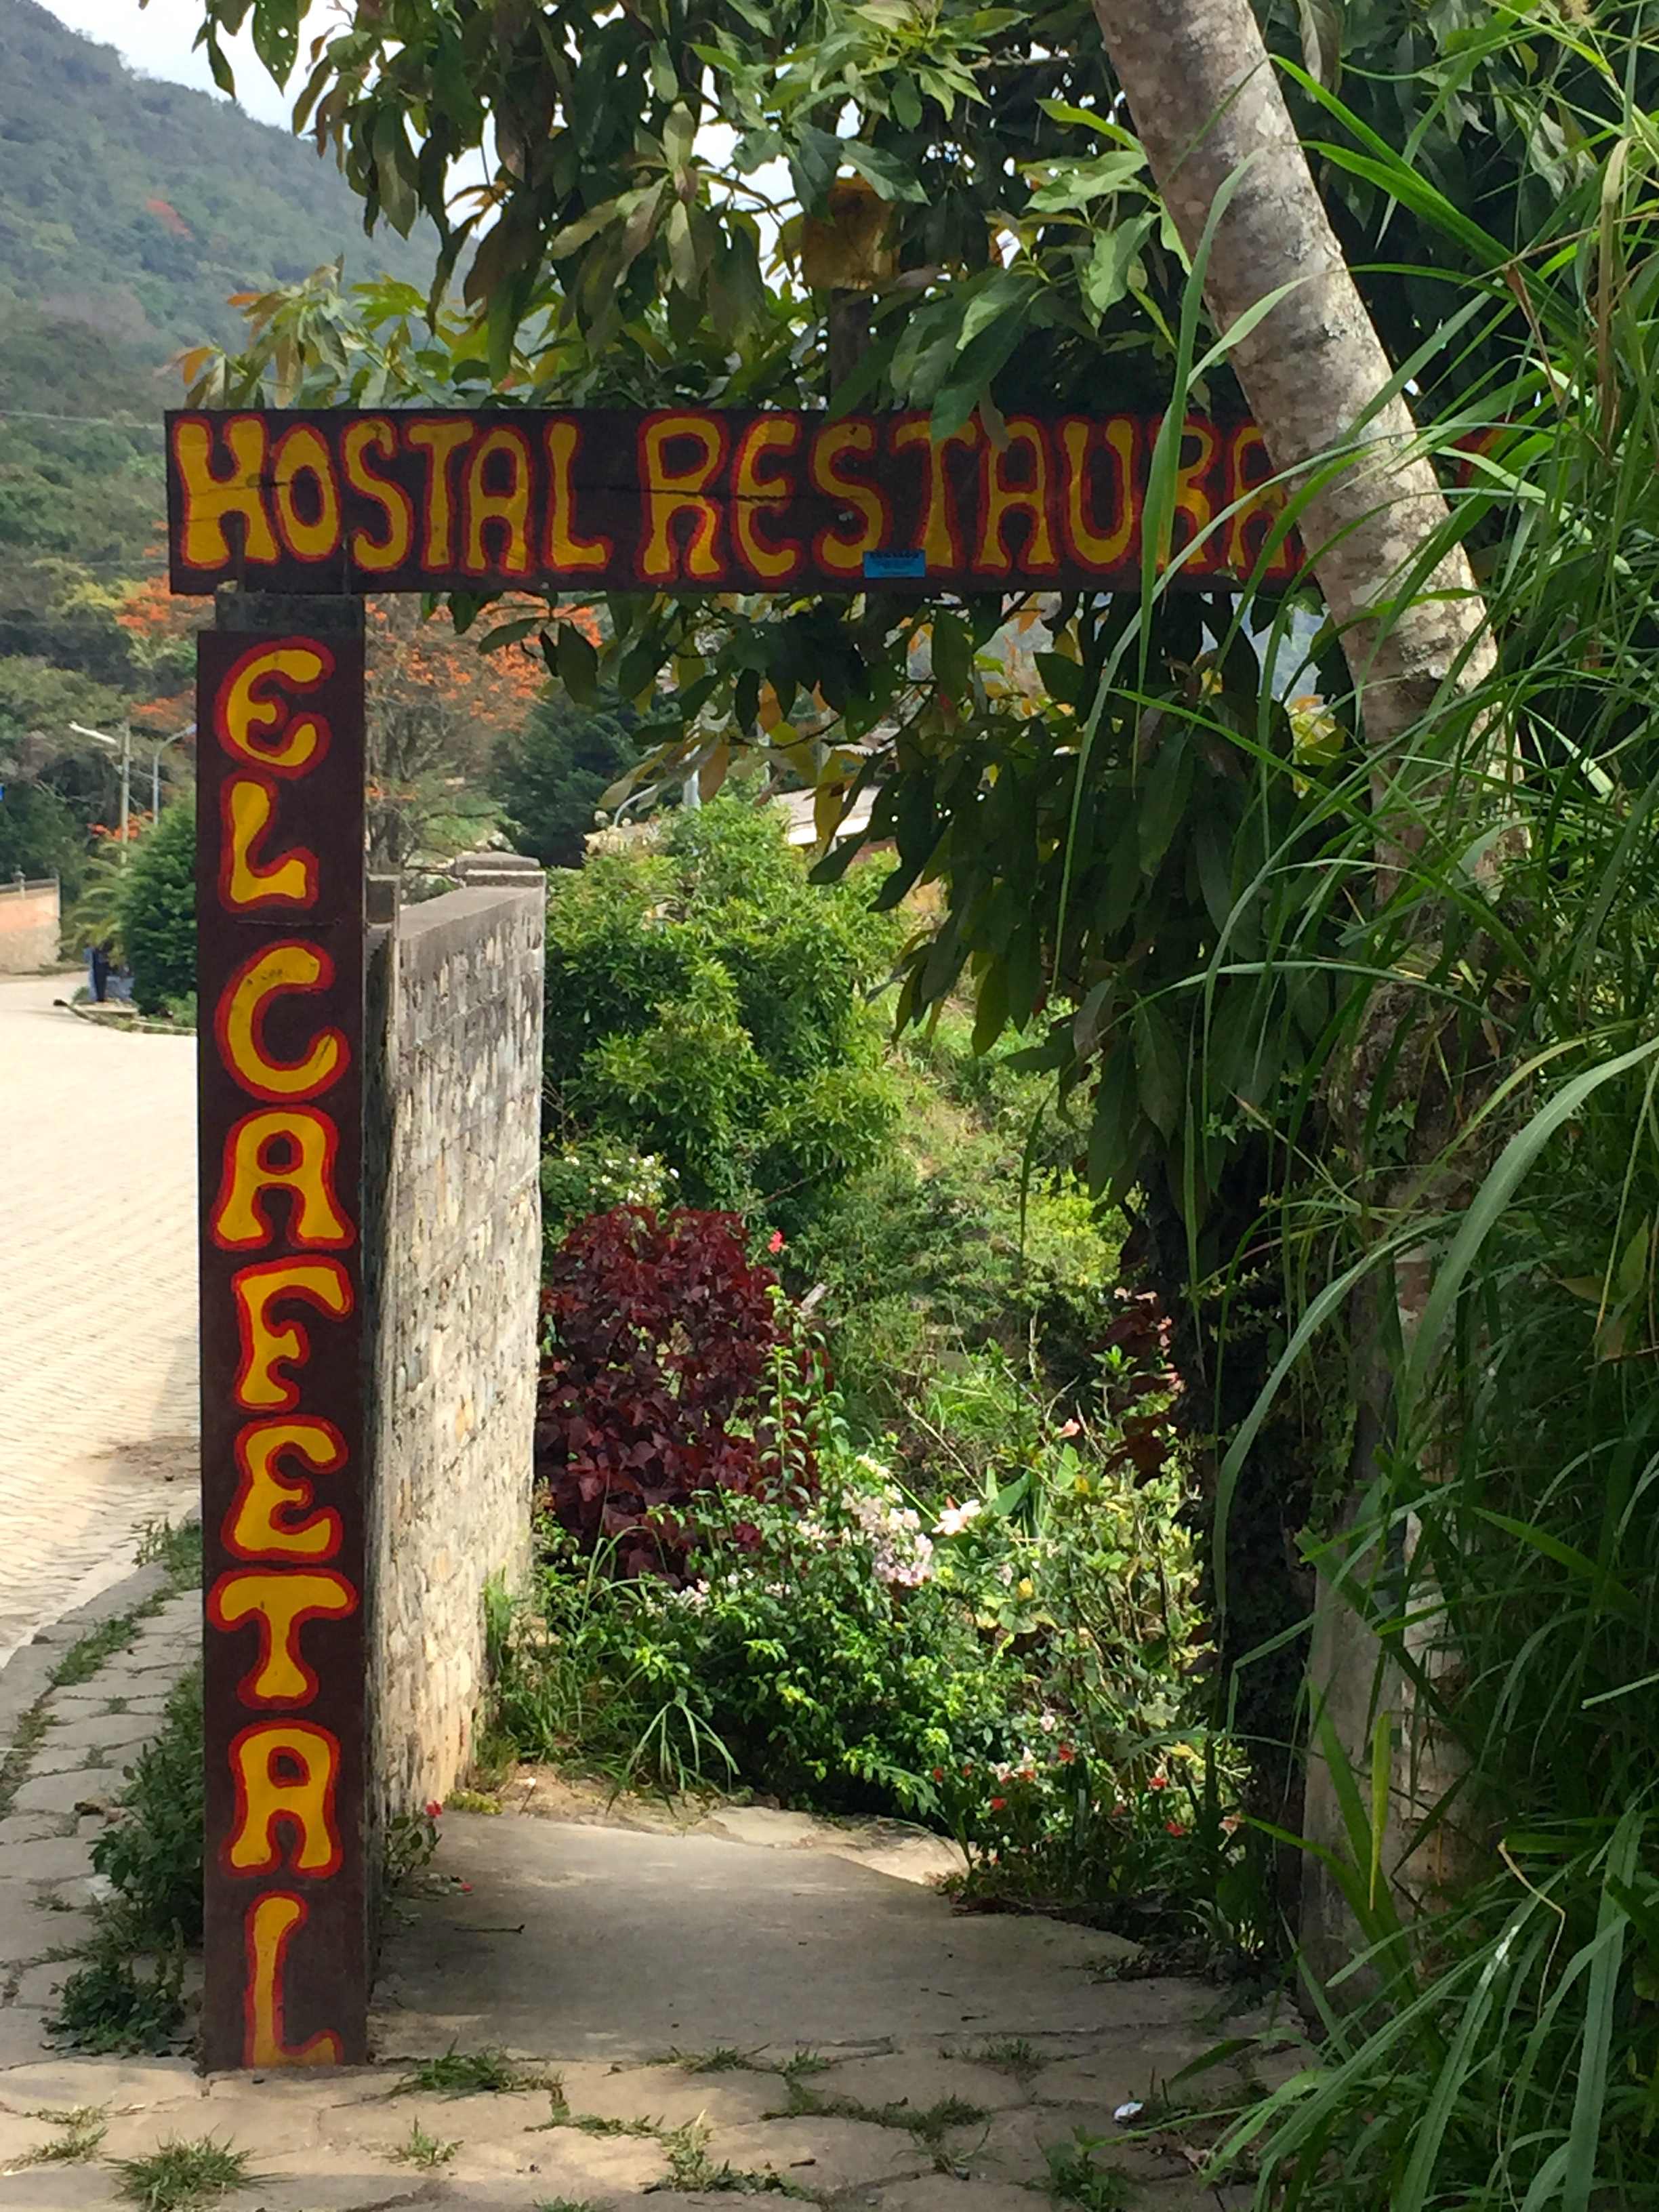 Our hostal entrance in Coroico.